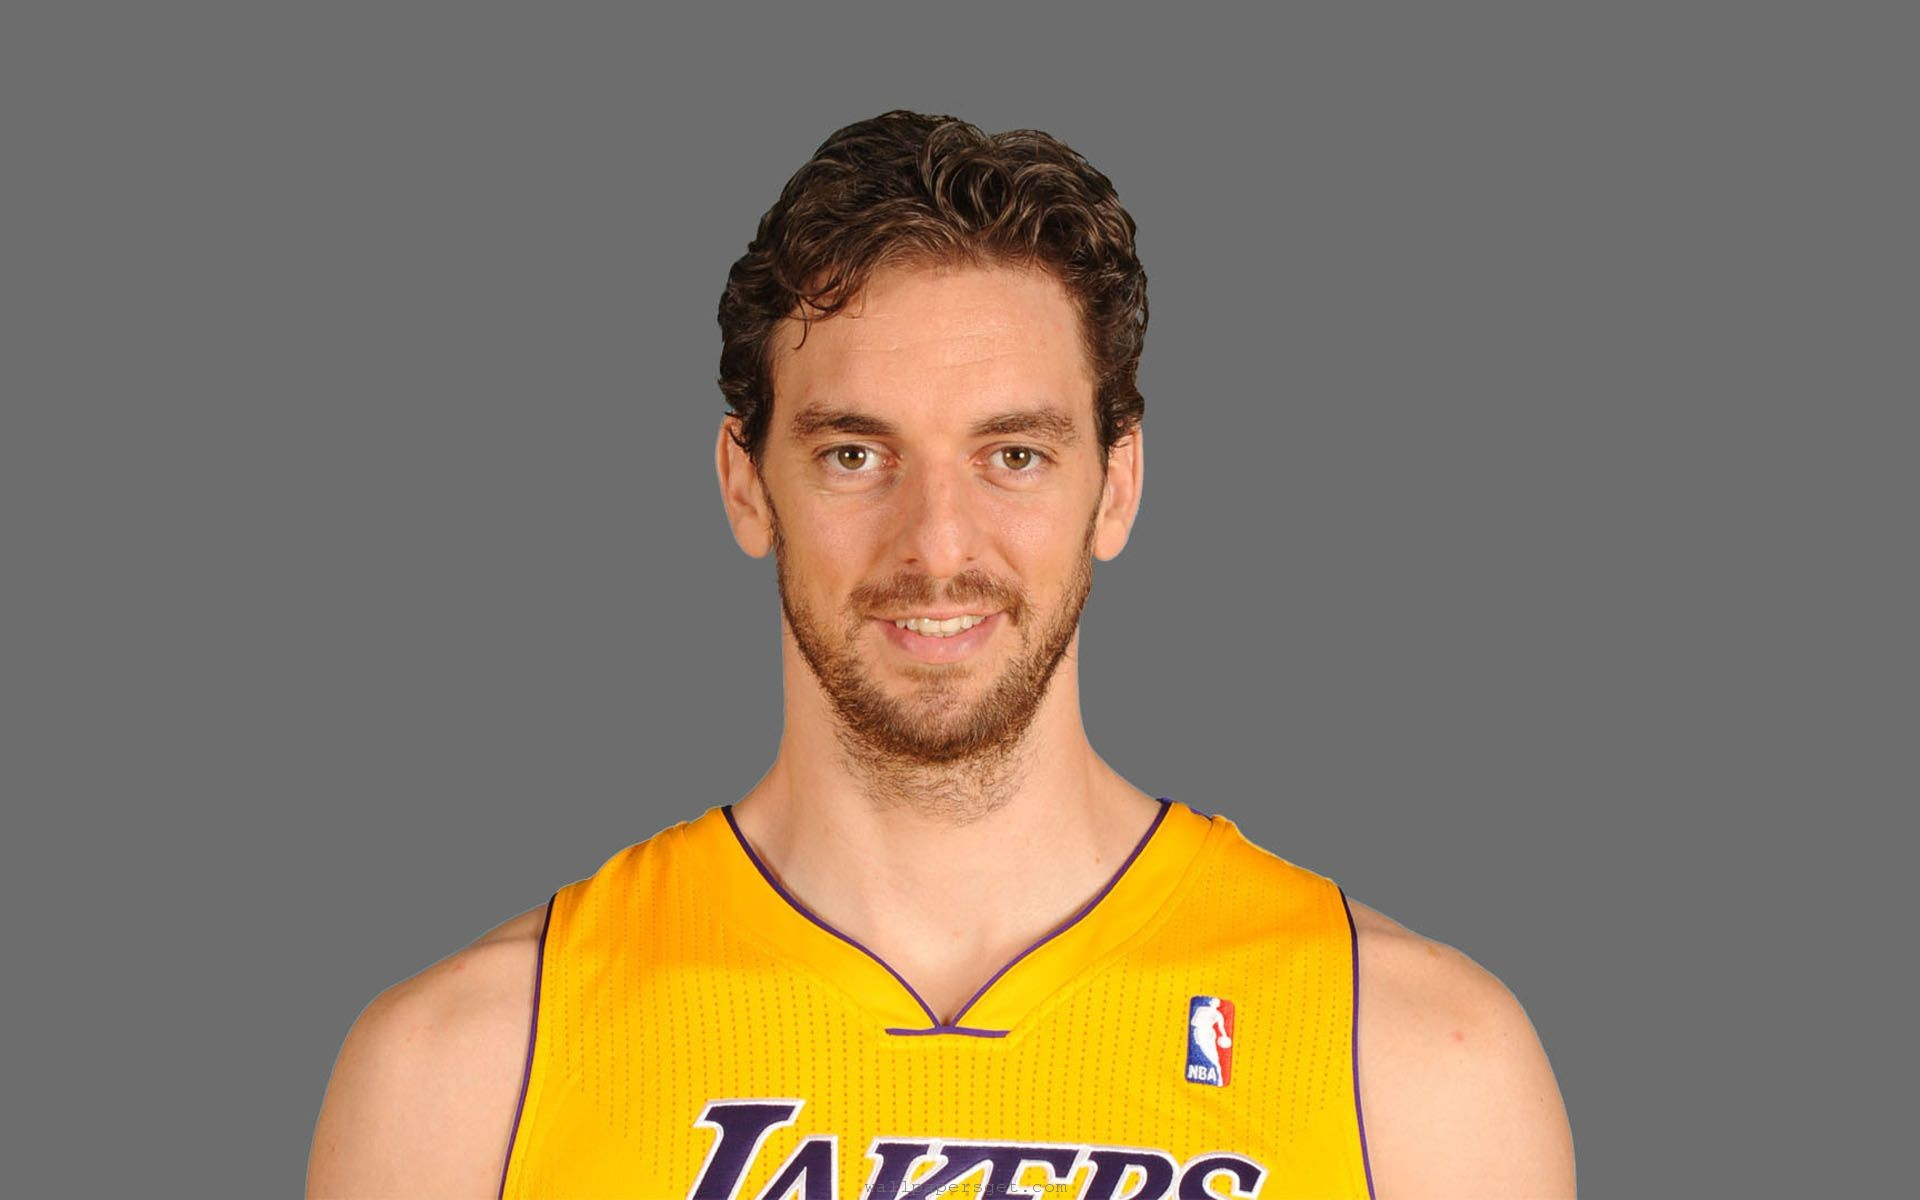 Pau Gasol earned a  million dollar salary - leaving the net worth at 65 million in 2018